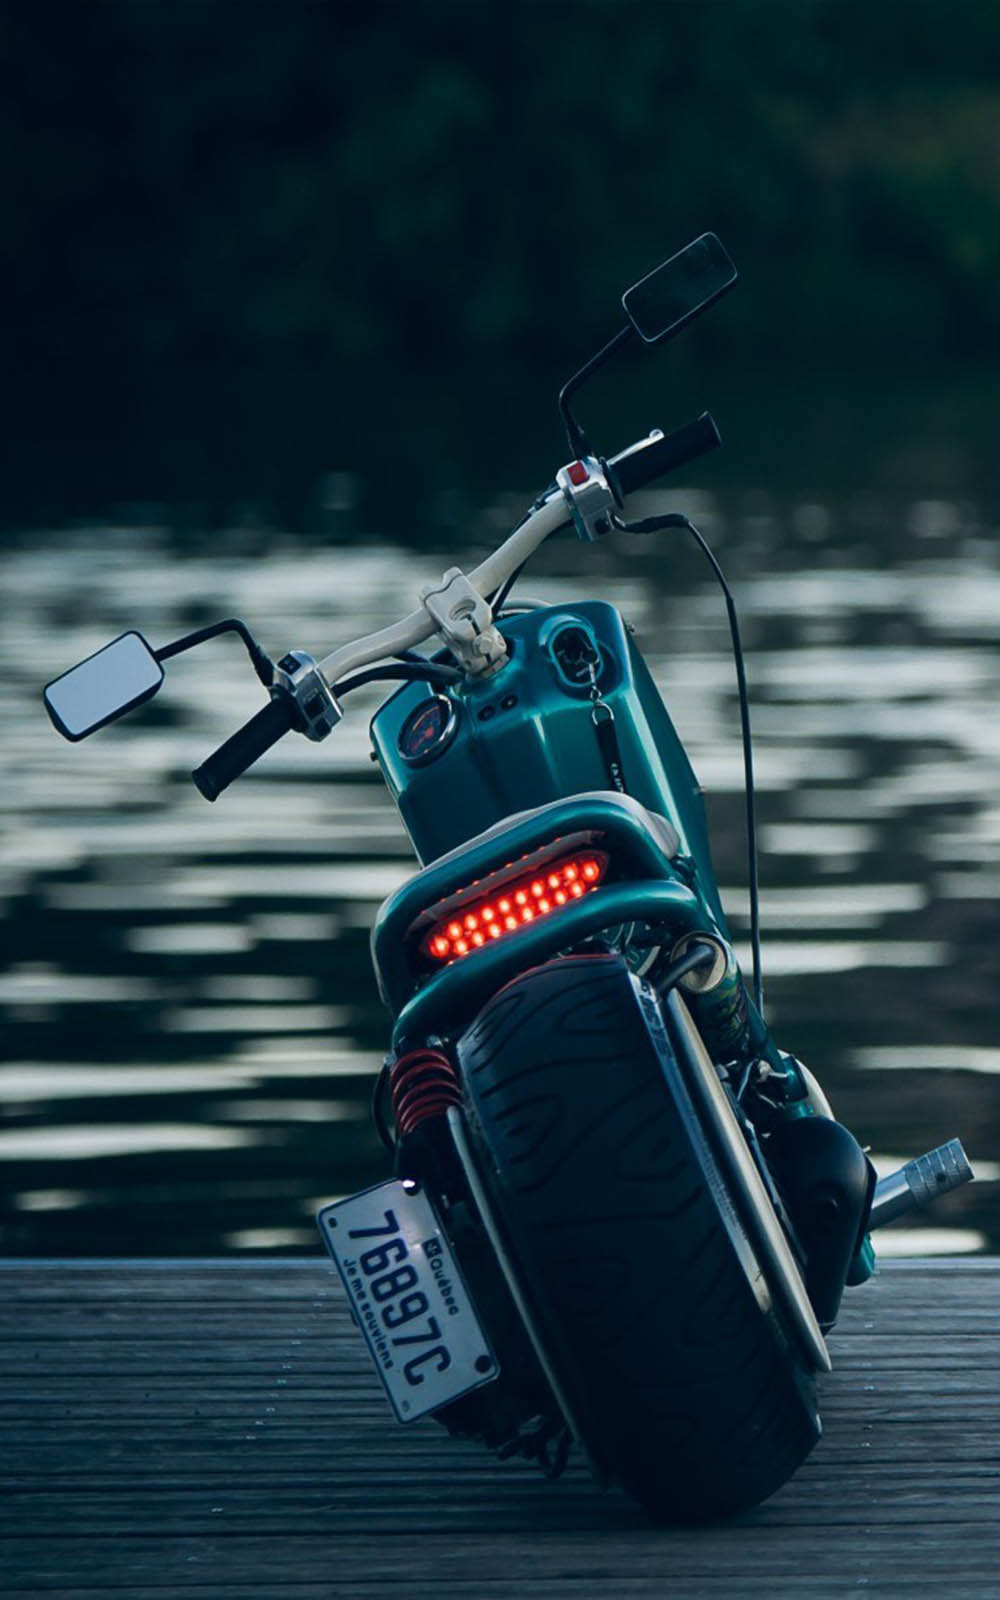 Super Bike At River Side Download Free Hd Mobile Wallpapers